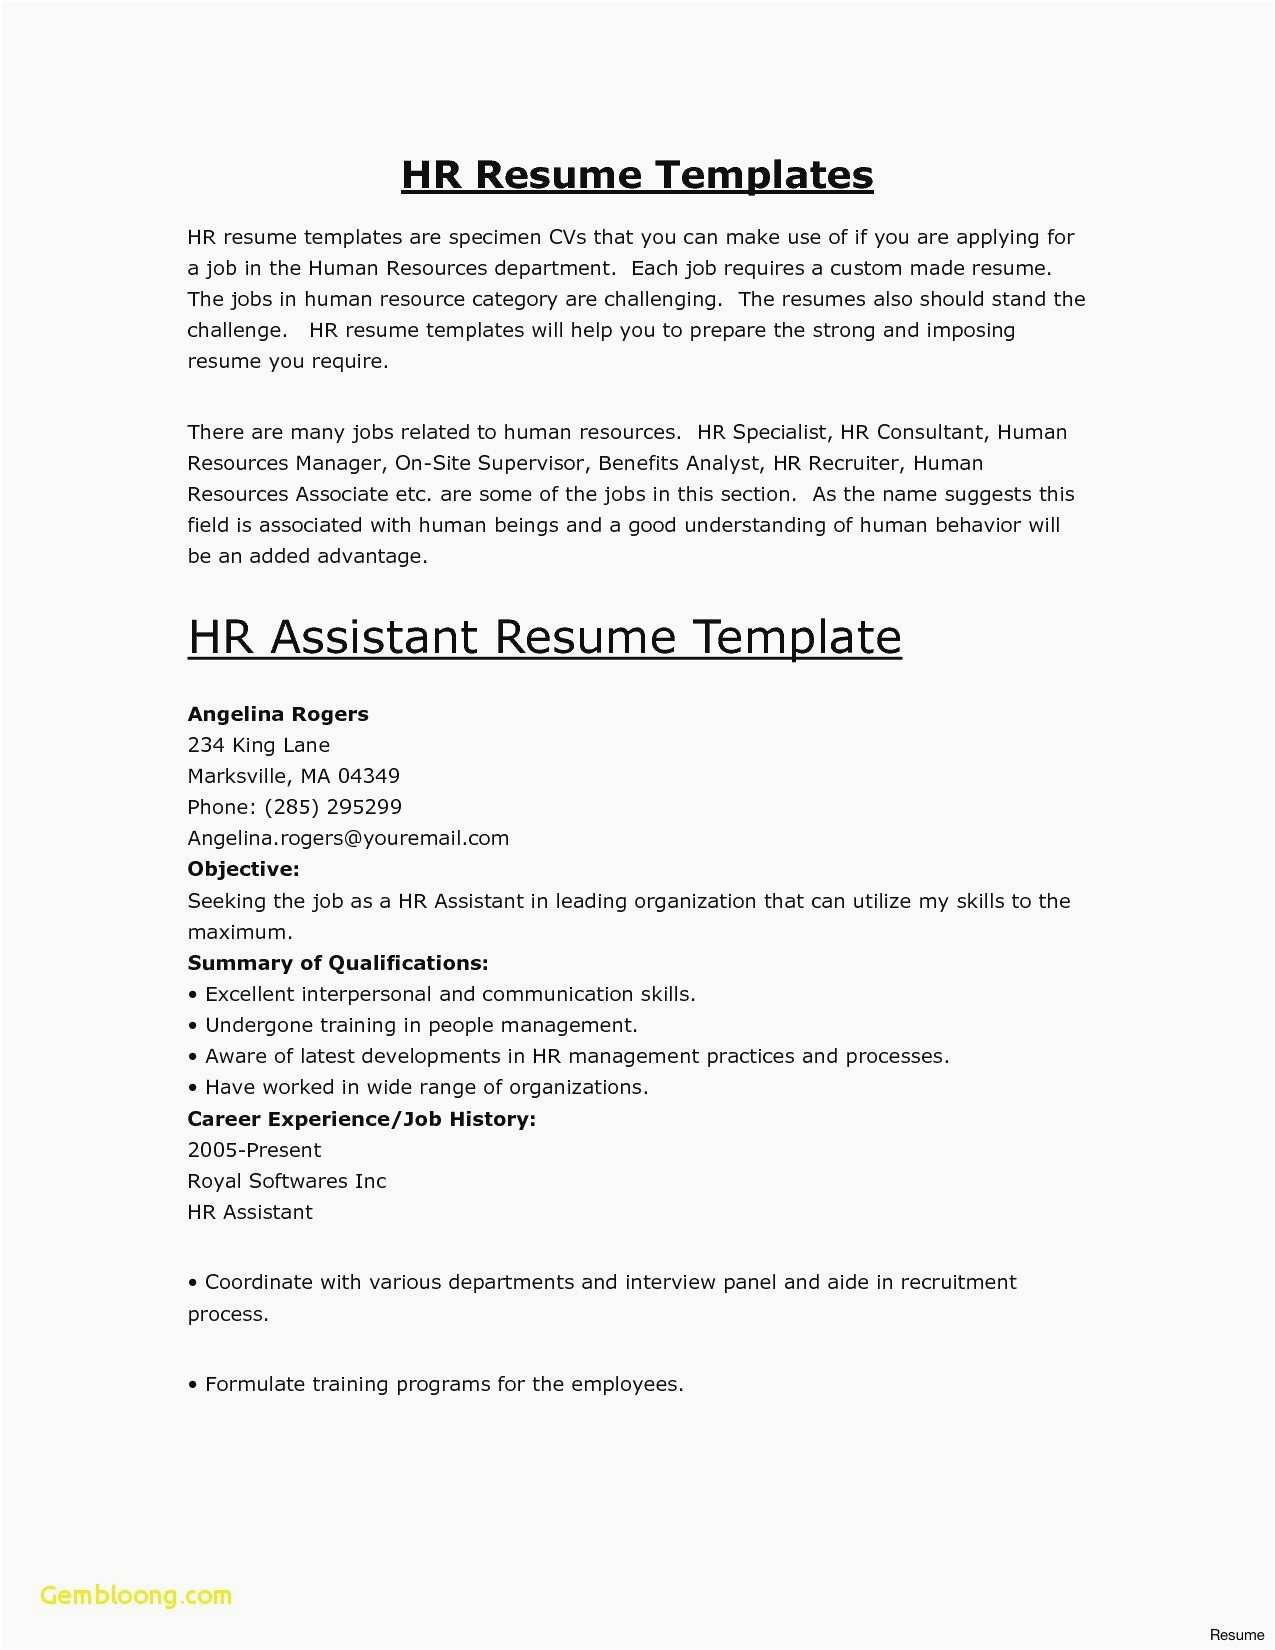 Pay for Resume Services - 23 New Professional Resume Service Simple